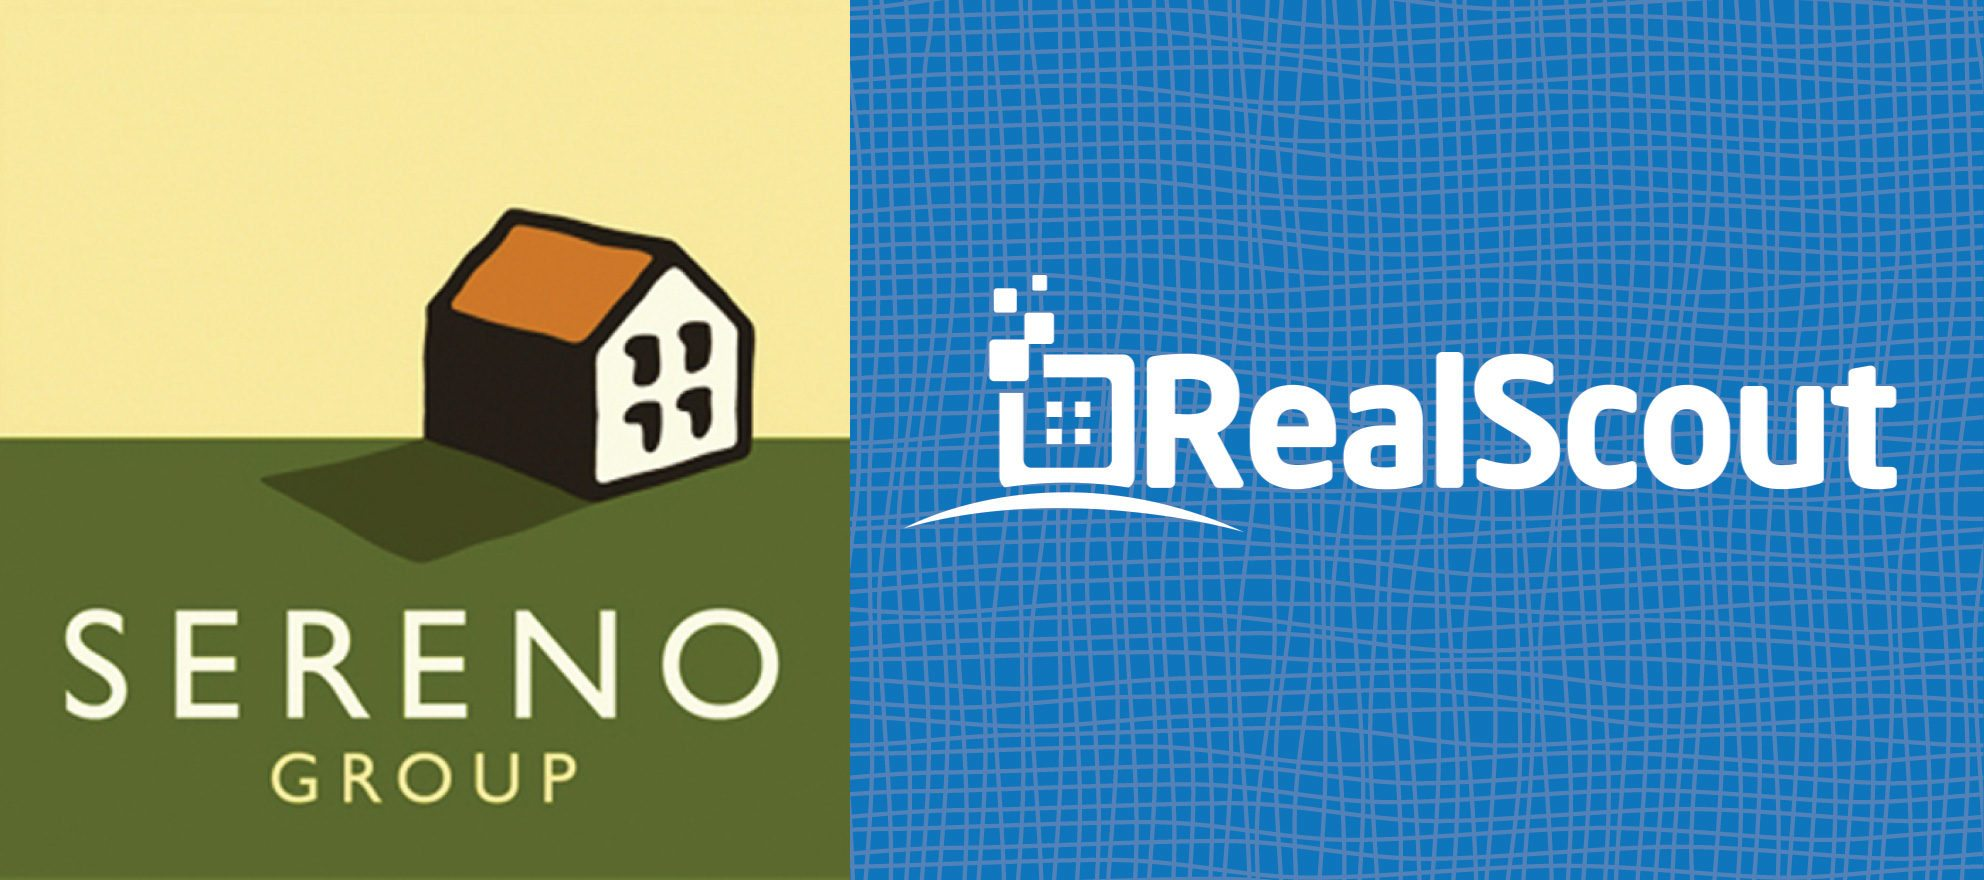 Branded, collaborative real estate search platform building steam